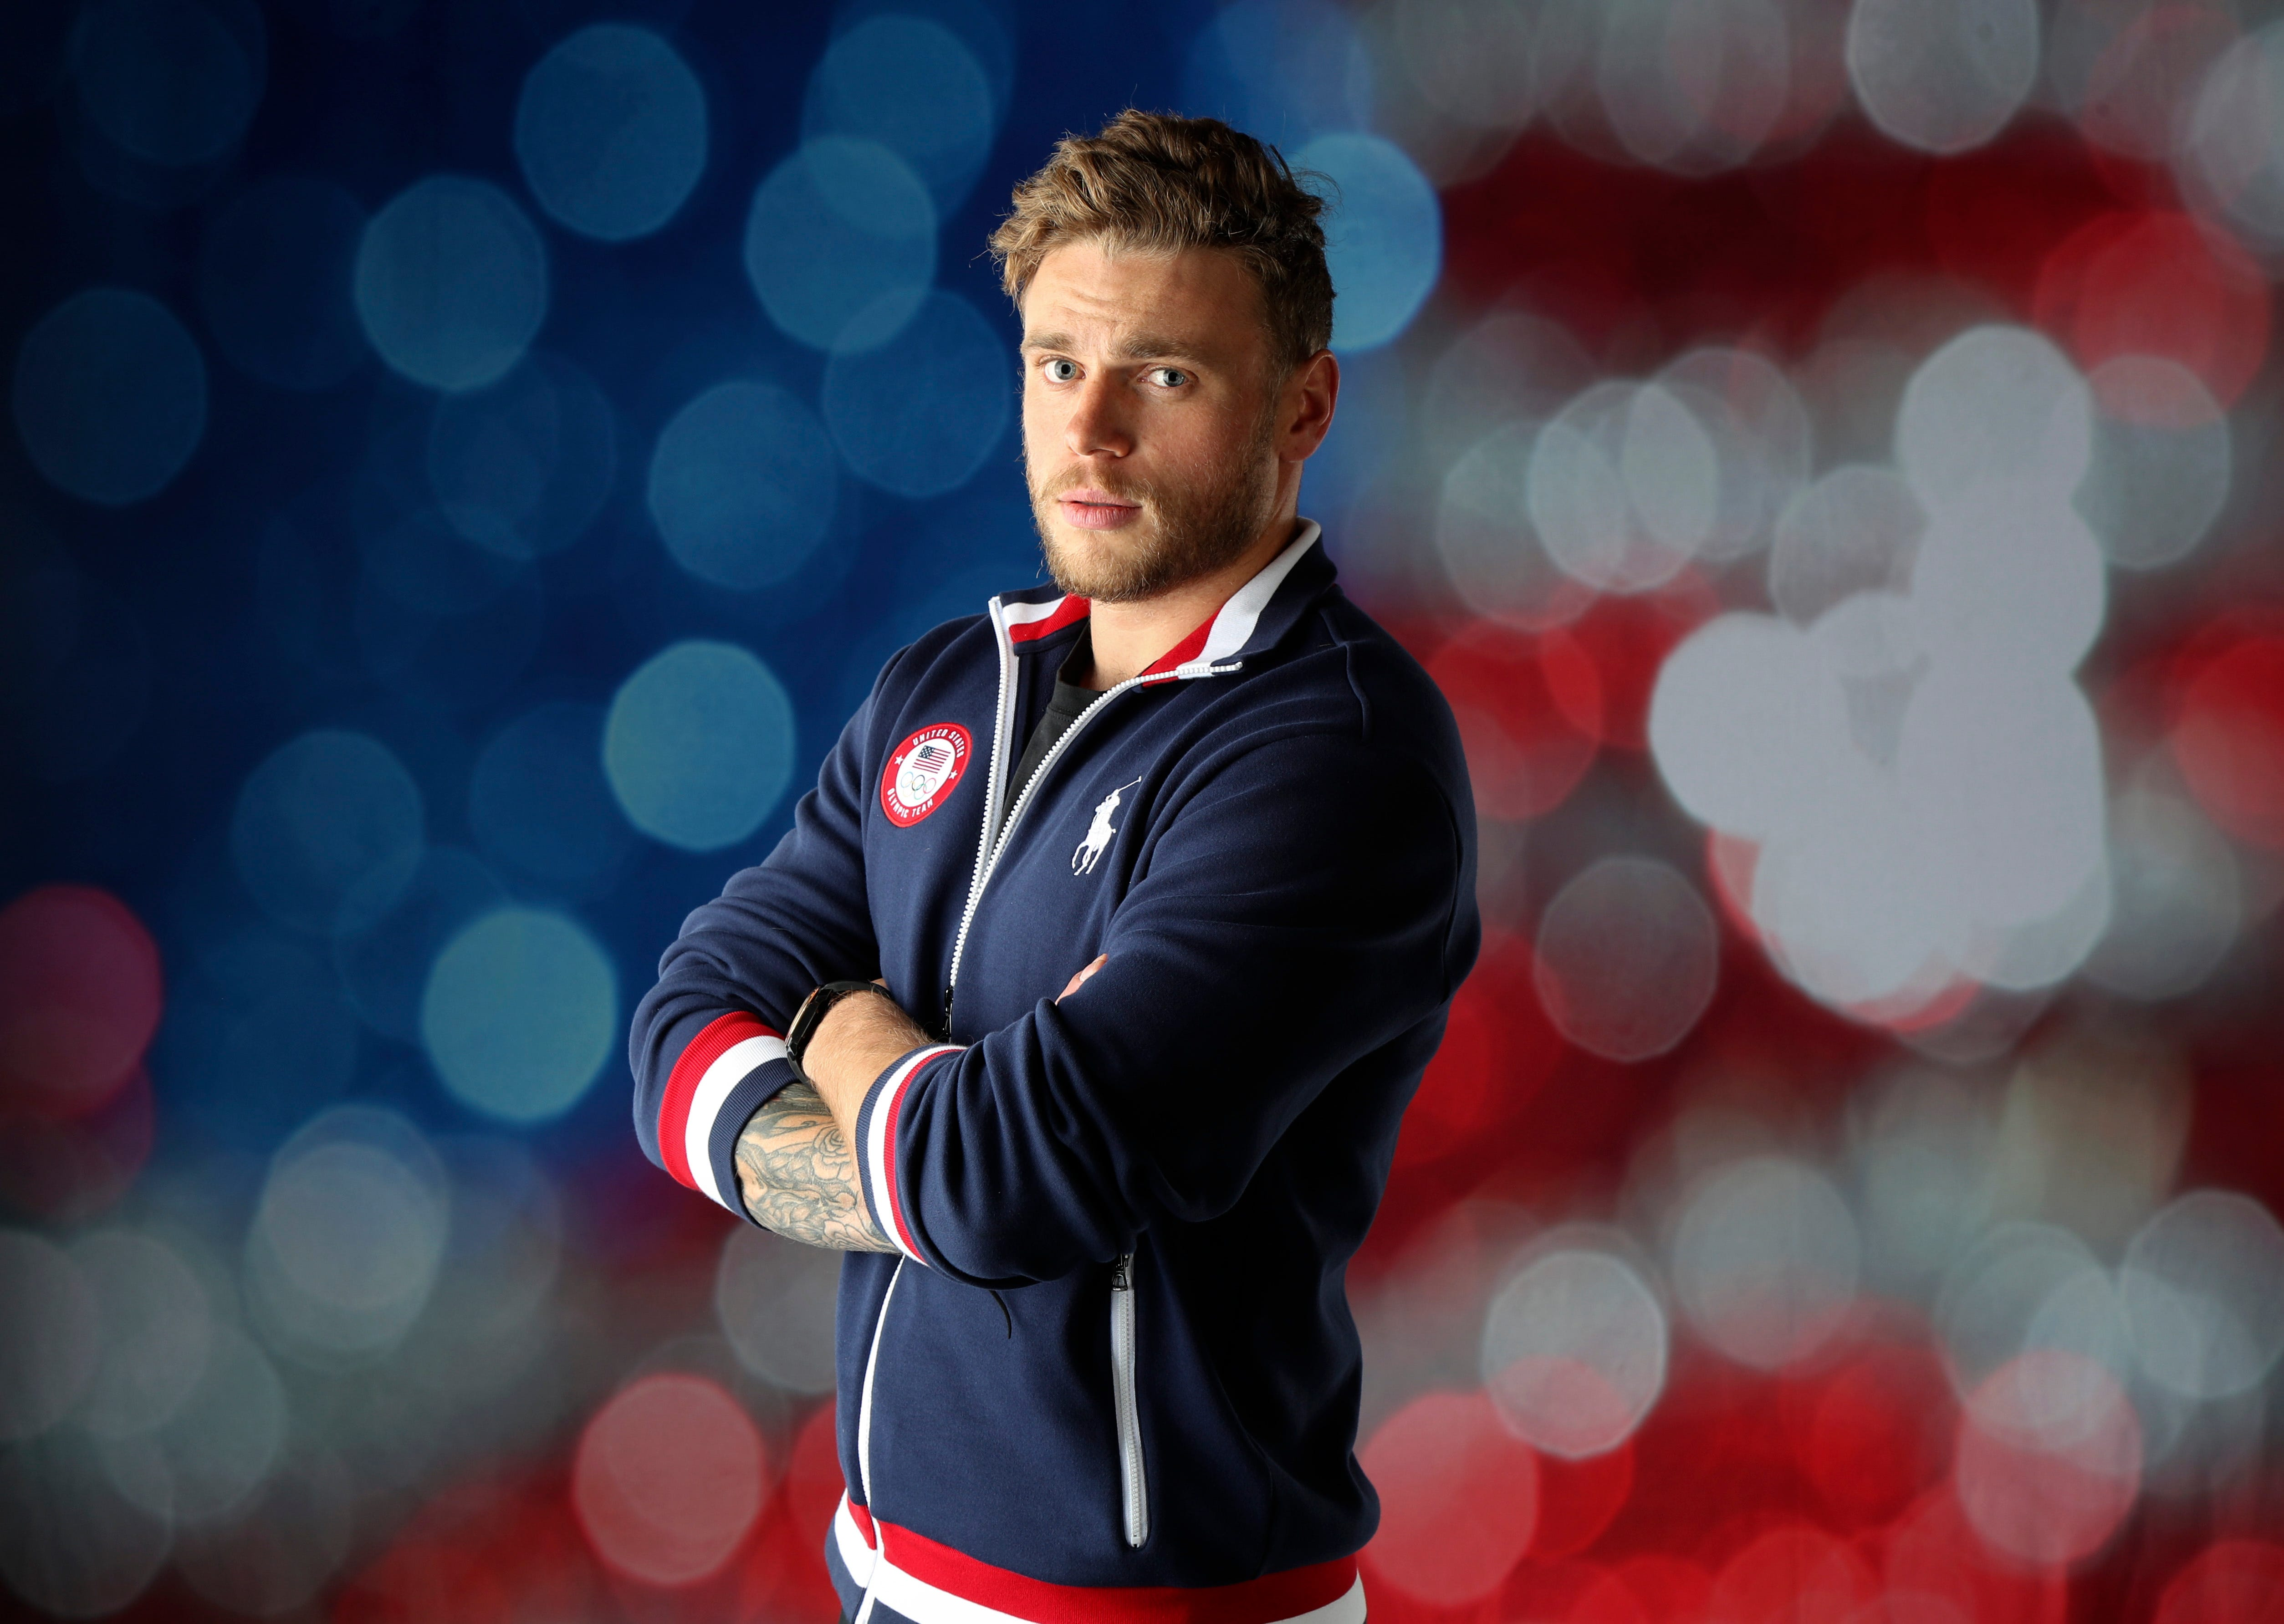 Gus Kenworthy takes shot at Mike Pence in Instagram post from Winter Olympics opening ceremony